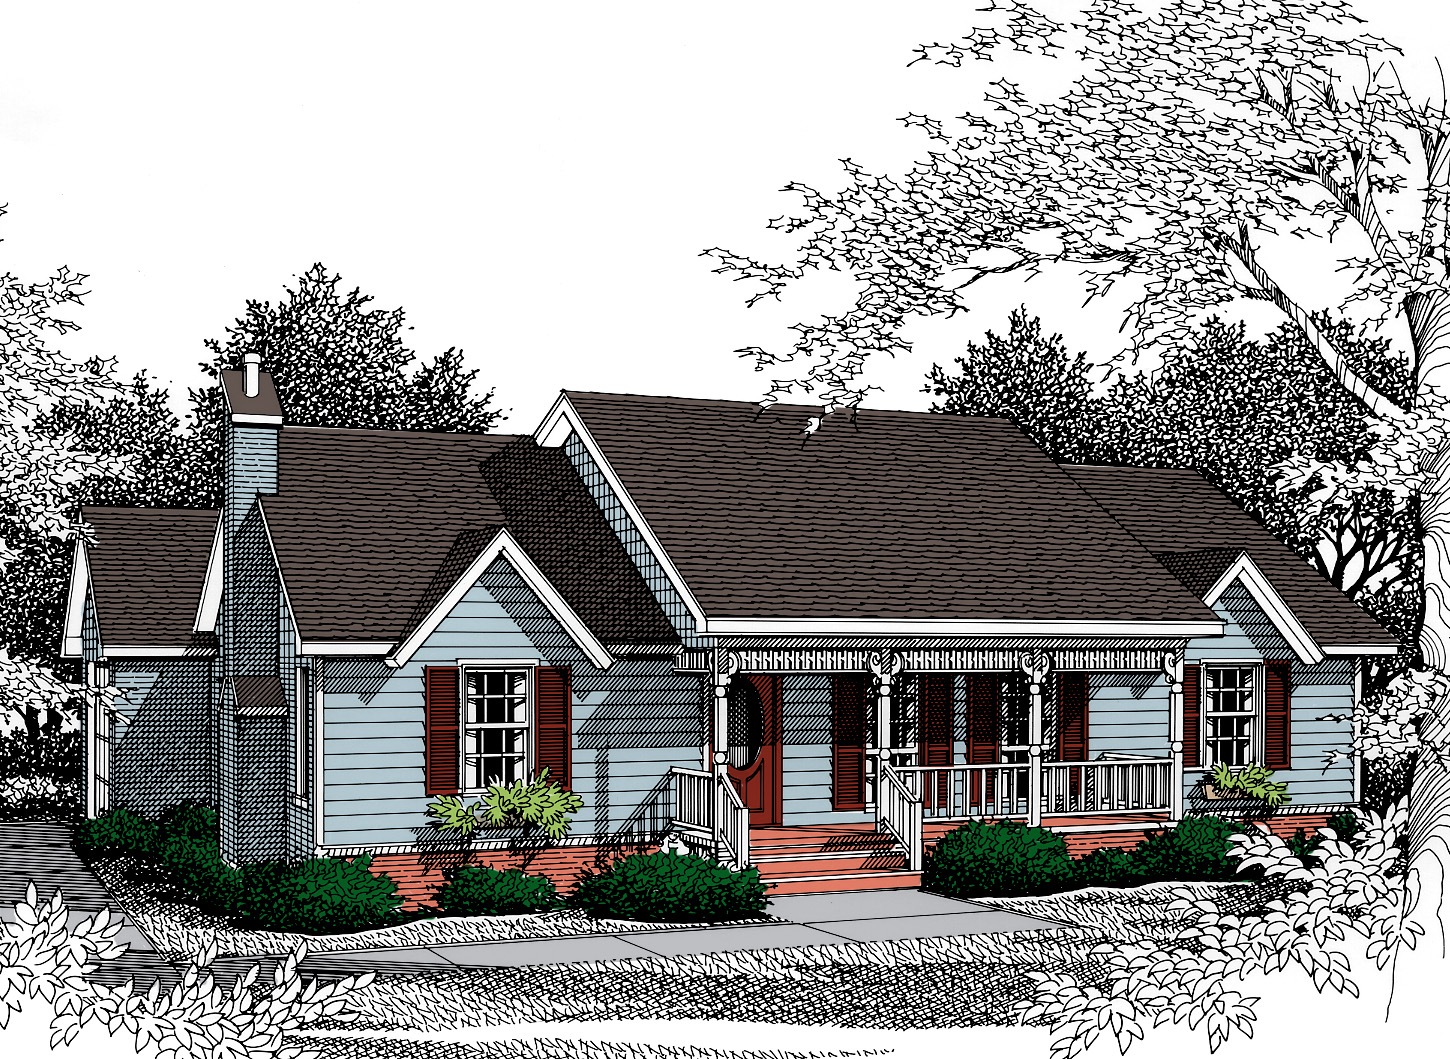 Compact home for corner lot 3402vl architectural for Corner lot home plans